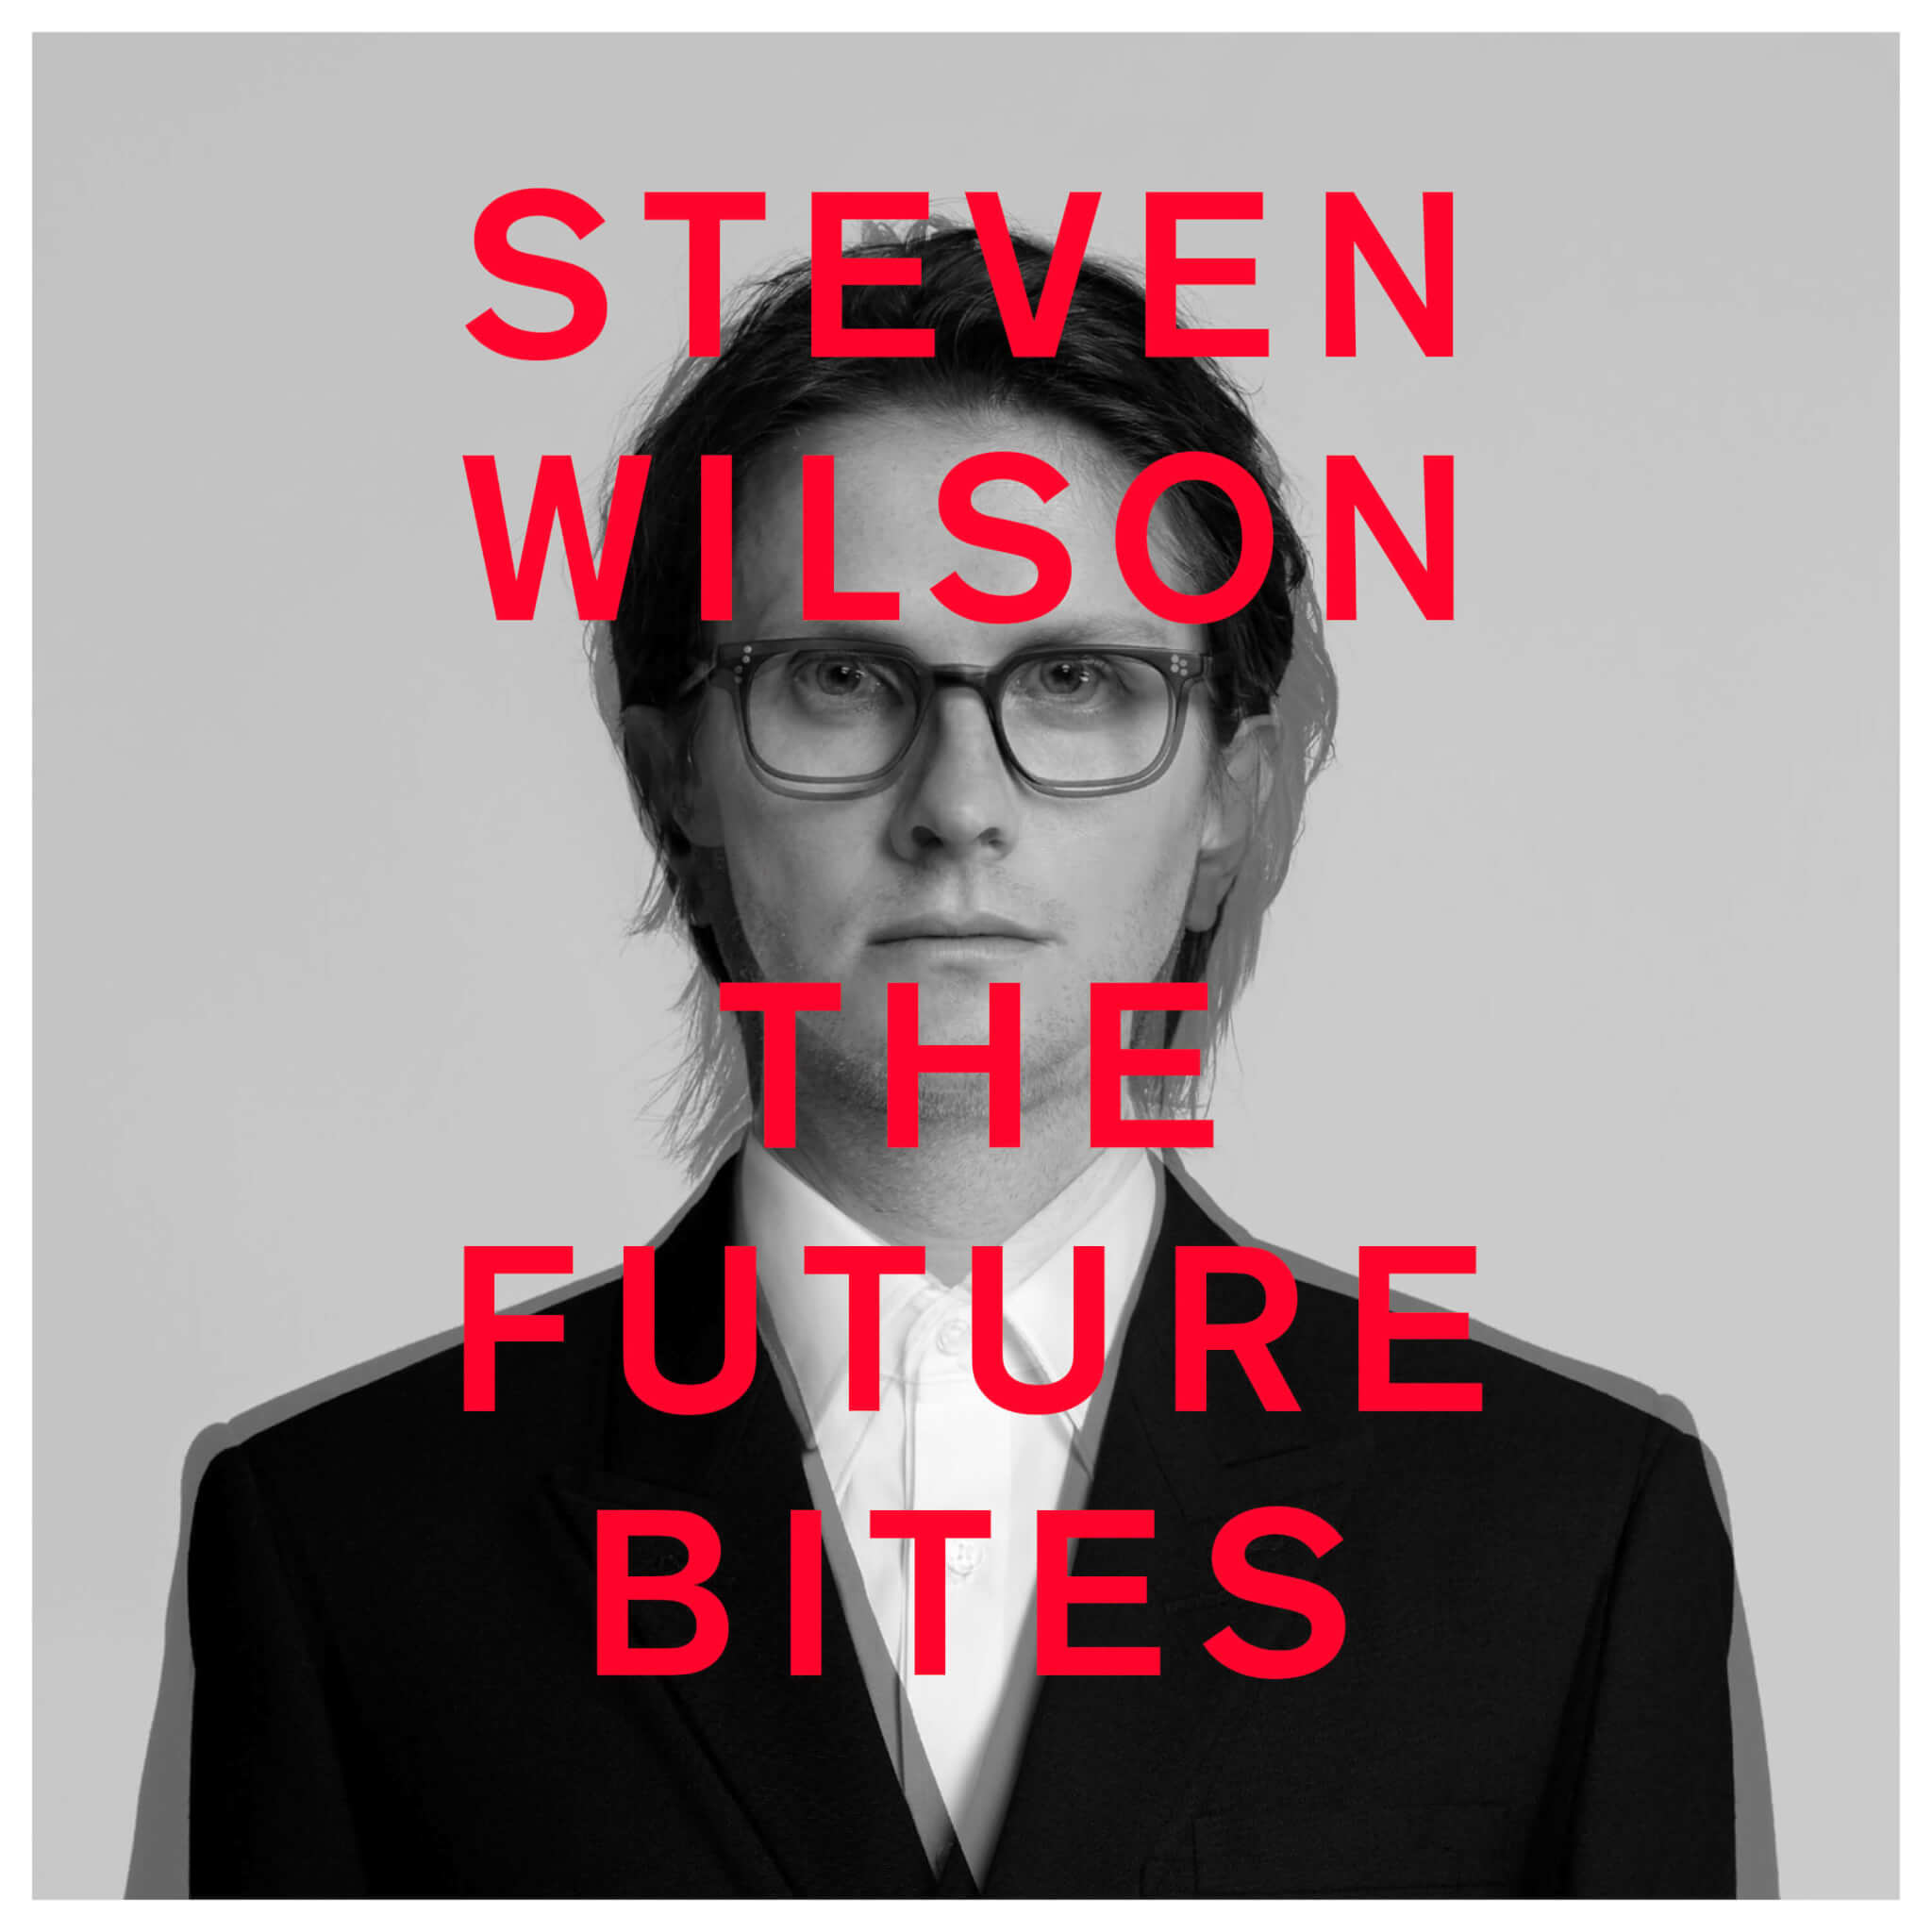 Steven Wilson - The Future Bites | Review | The Wee Review | Scotland's  arts and culture magazine